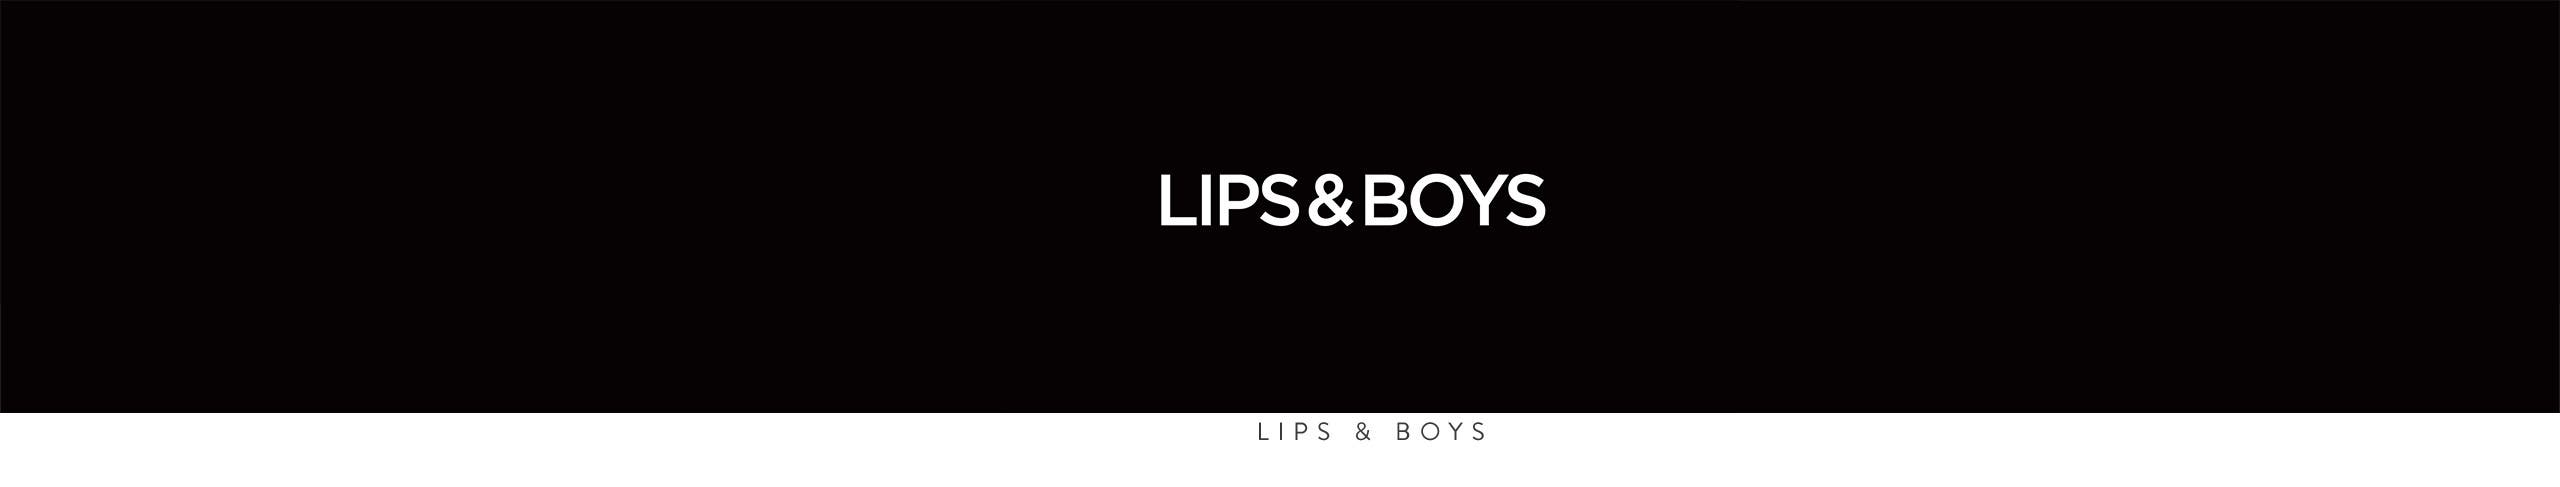 Lips and Boys.